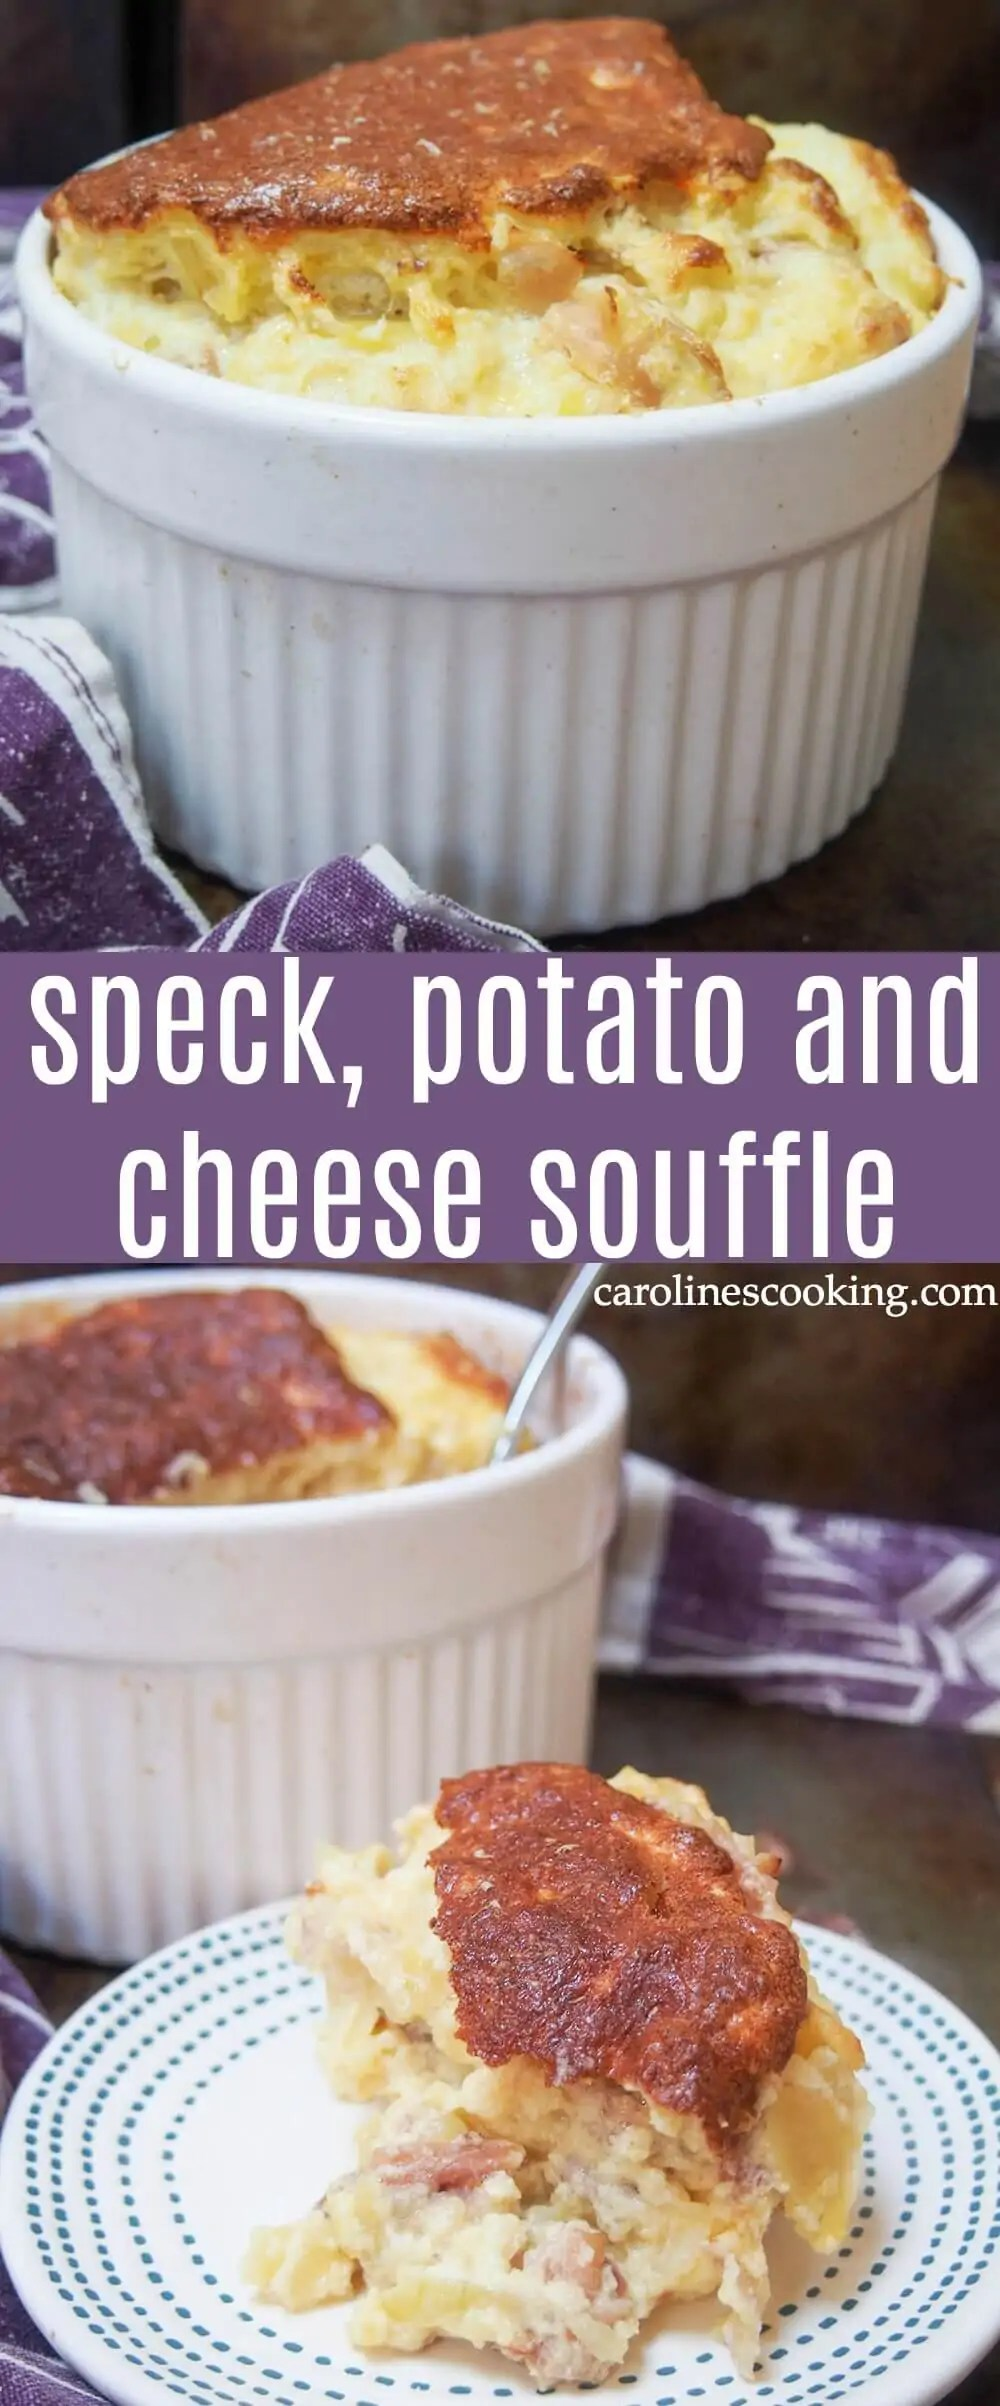 This speck, potato and cheese souffle makes relatively humble ingredients into something special and delicious, with a lovely smoky speck ham flavor coming through. This savory souffle makes a tasty lunch or light meal. #savorysouffle #cheesesouffle